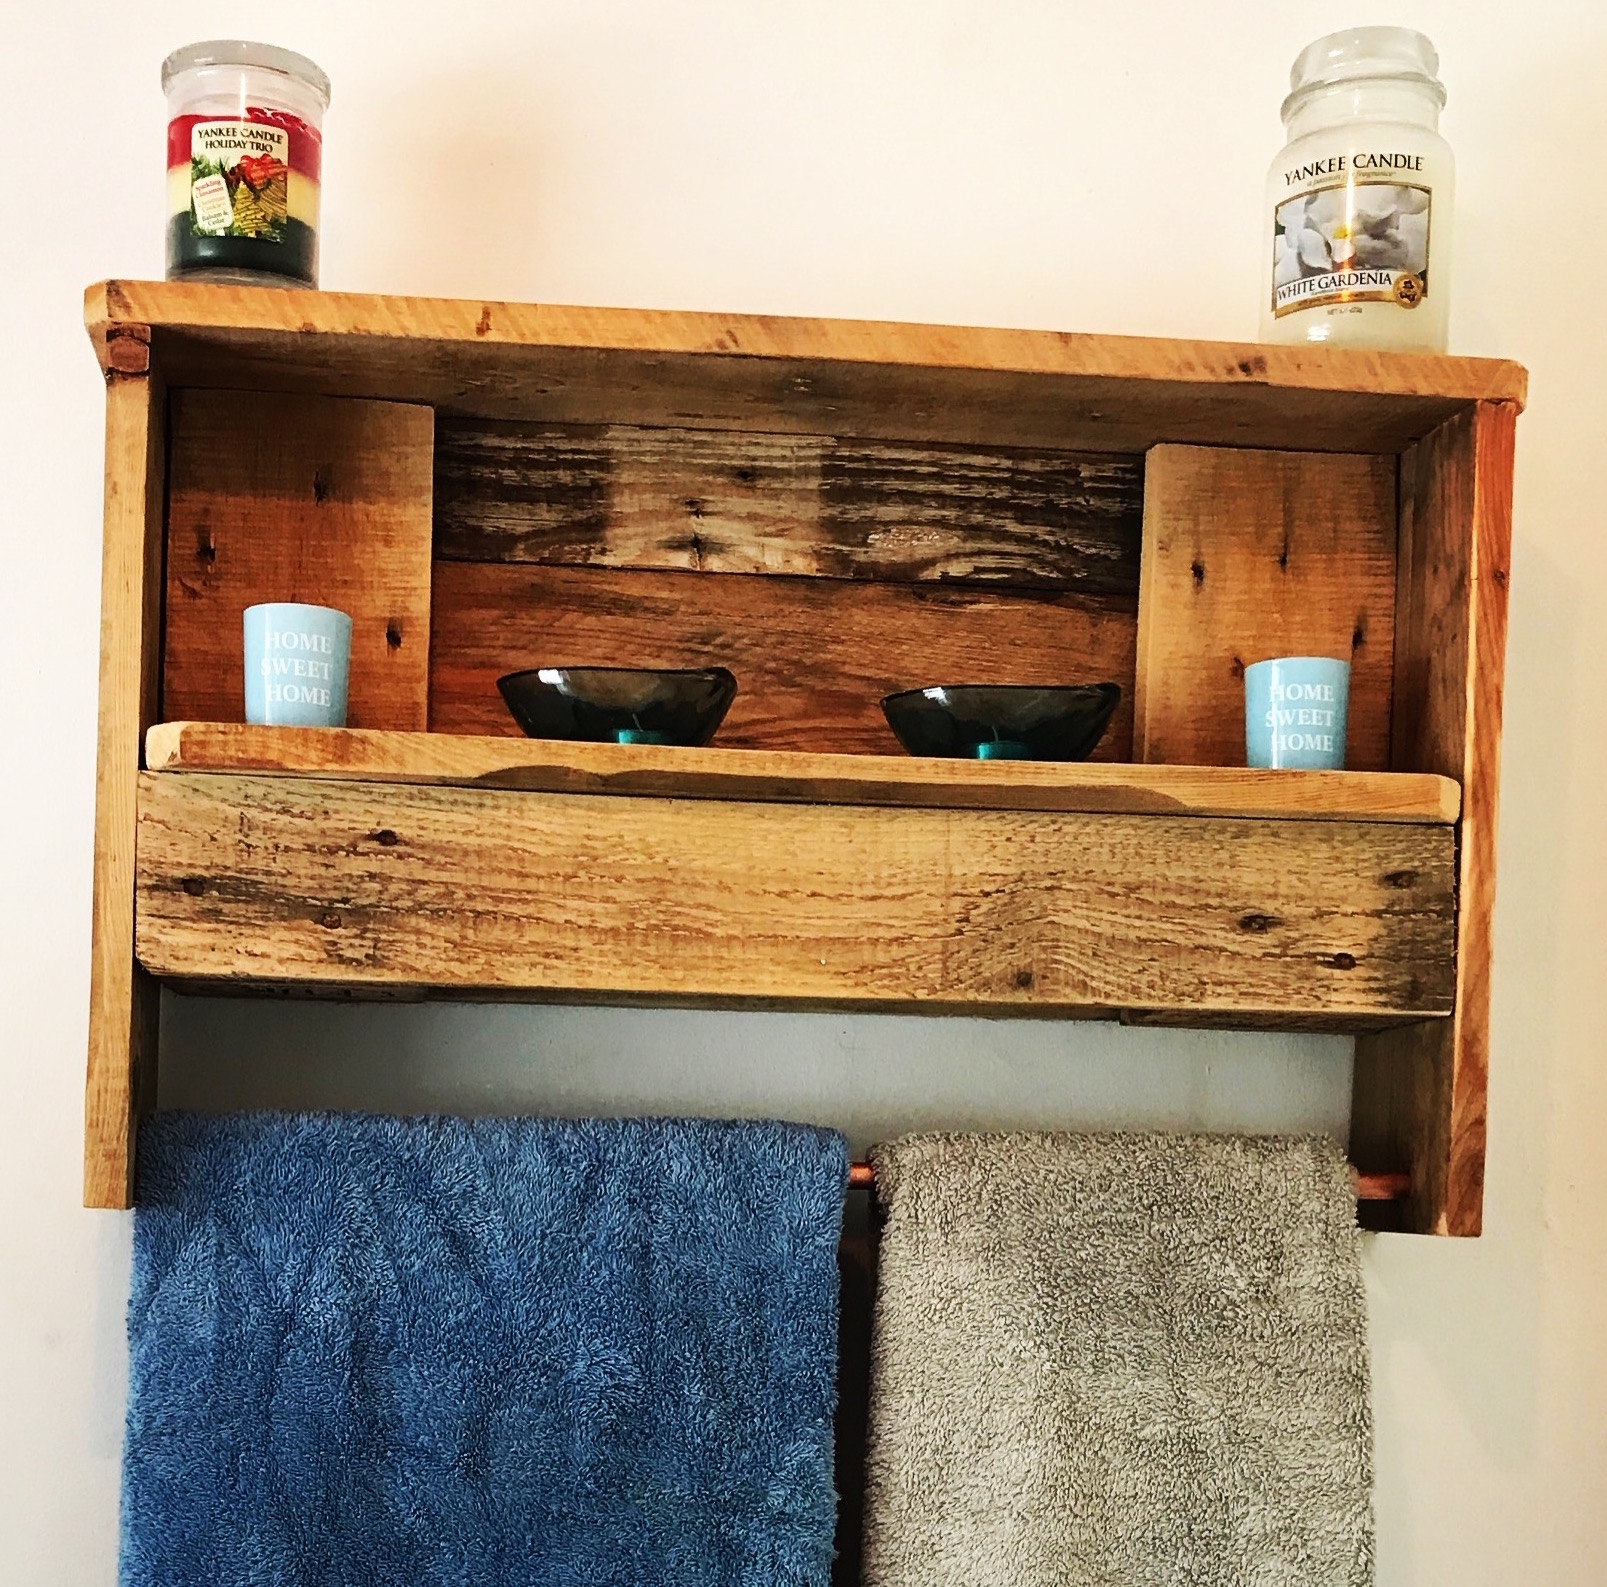 Bathroom Shelf and towel rail